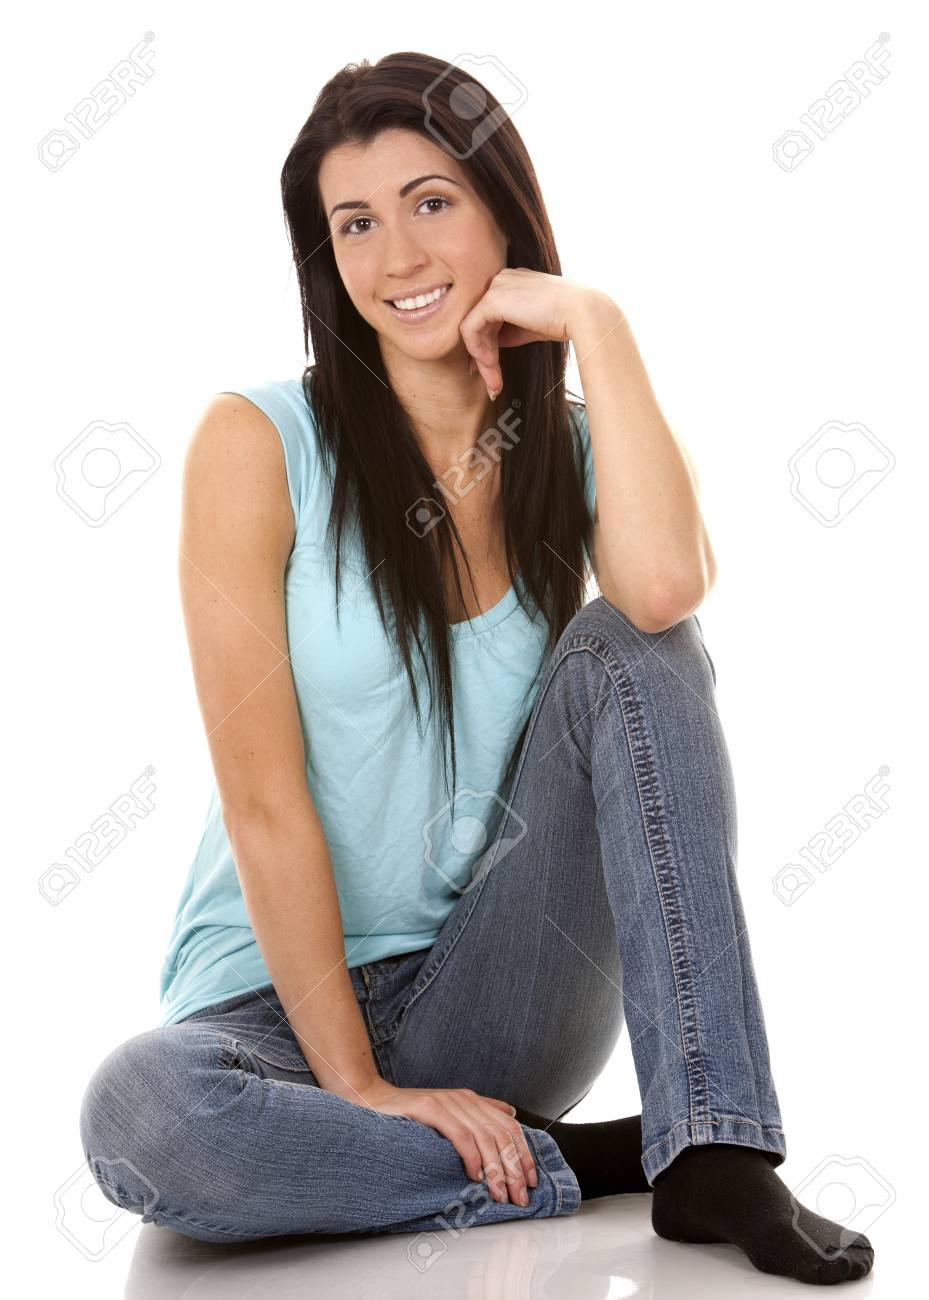 brunette wearing blue casual outfit on white isolated background Stock Photo - 16878875